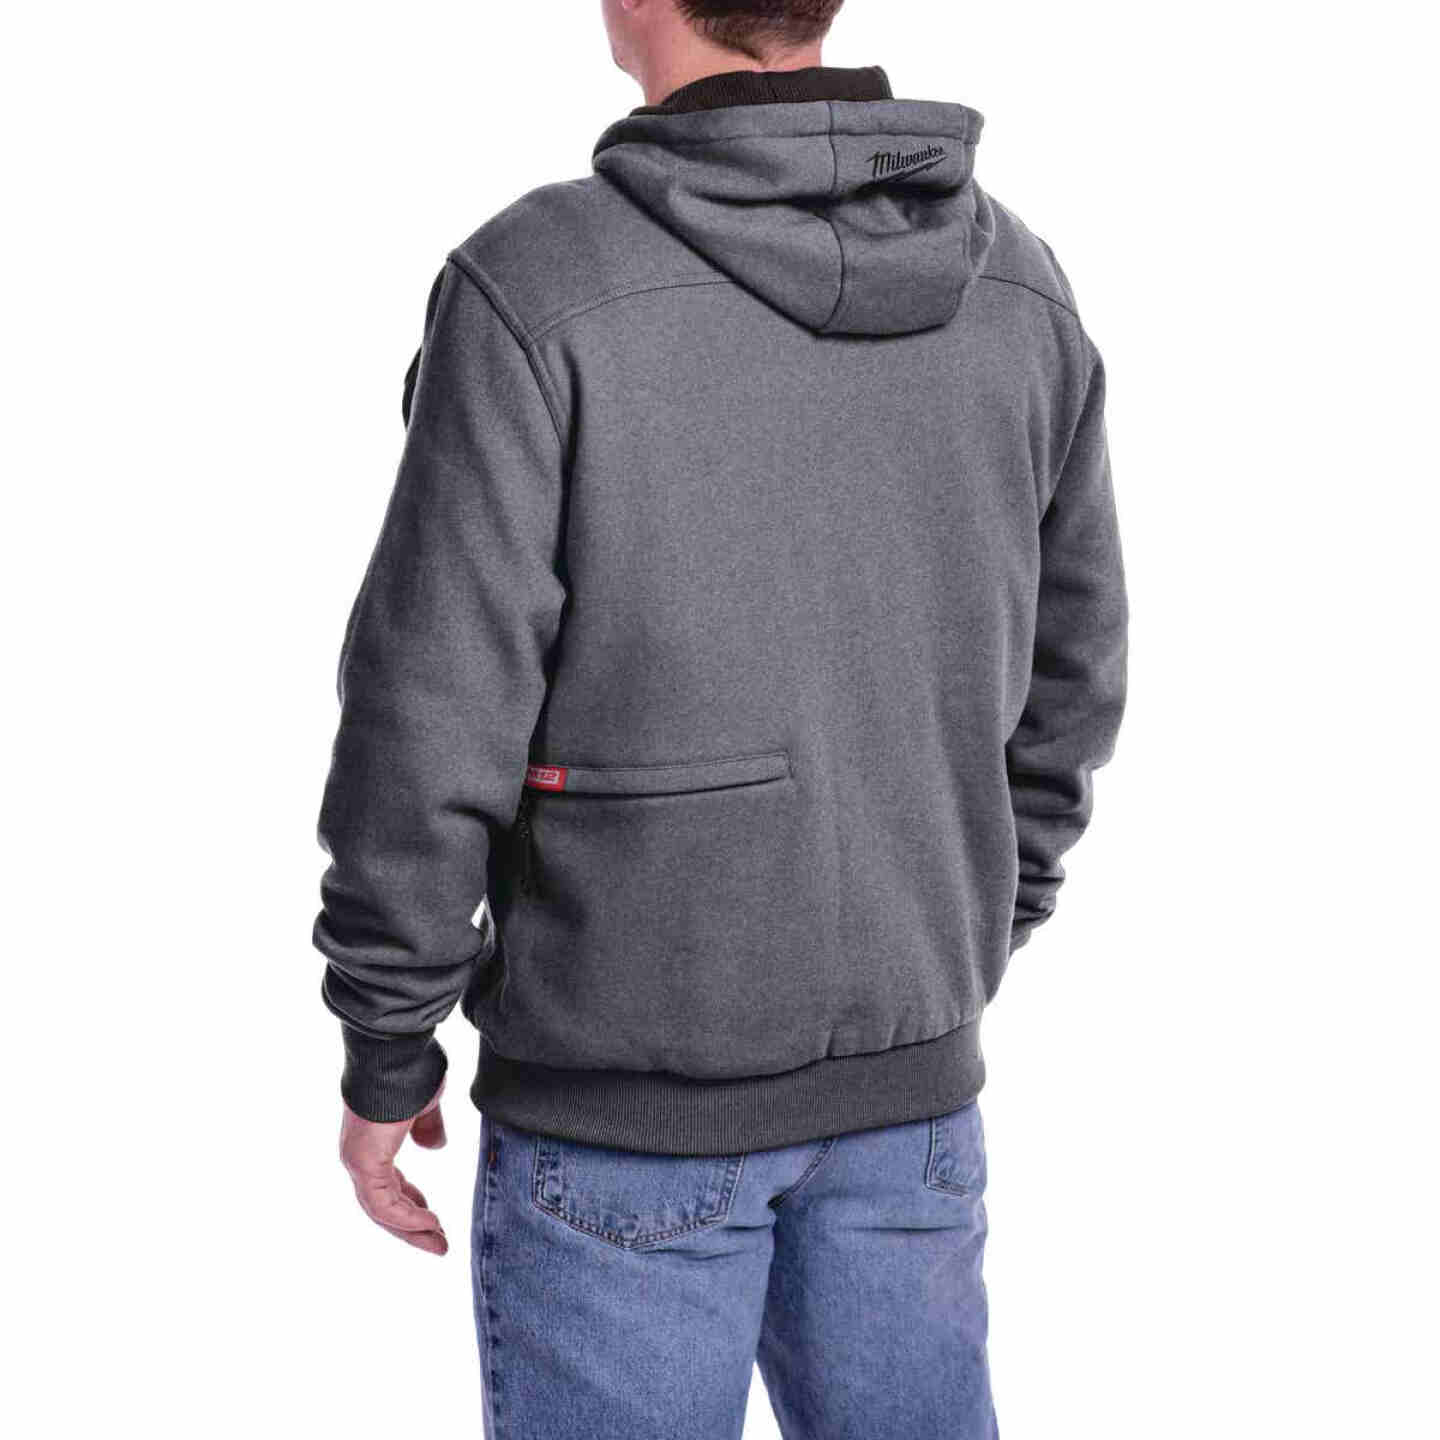 Milwaukee M12 Medium Gray Men's Heated Full Zip Hooded Sweatshirt Image 10